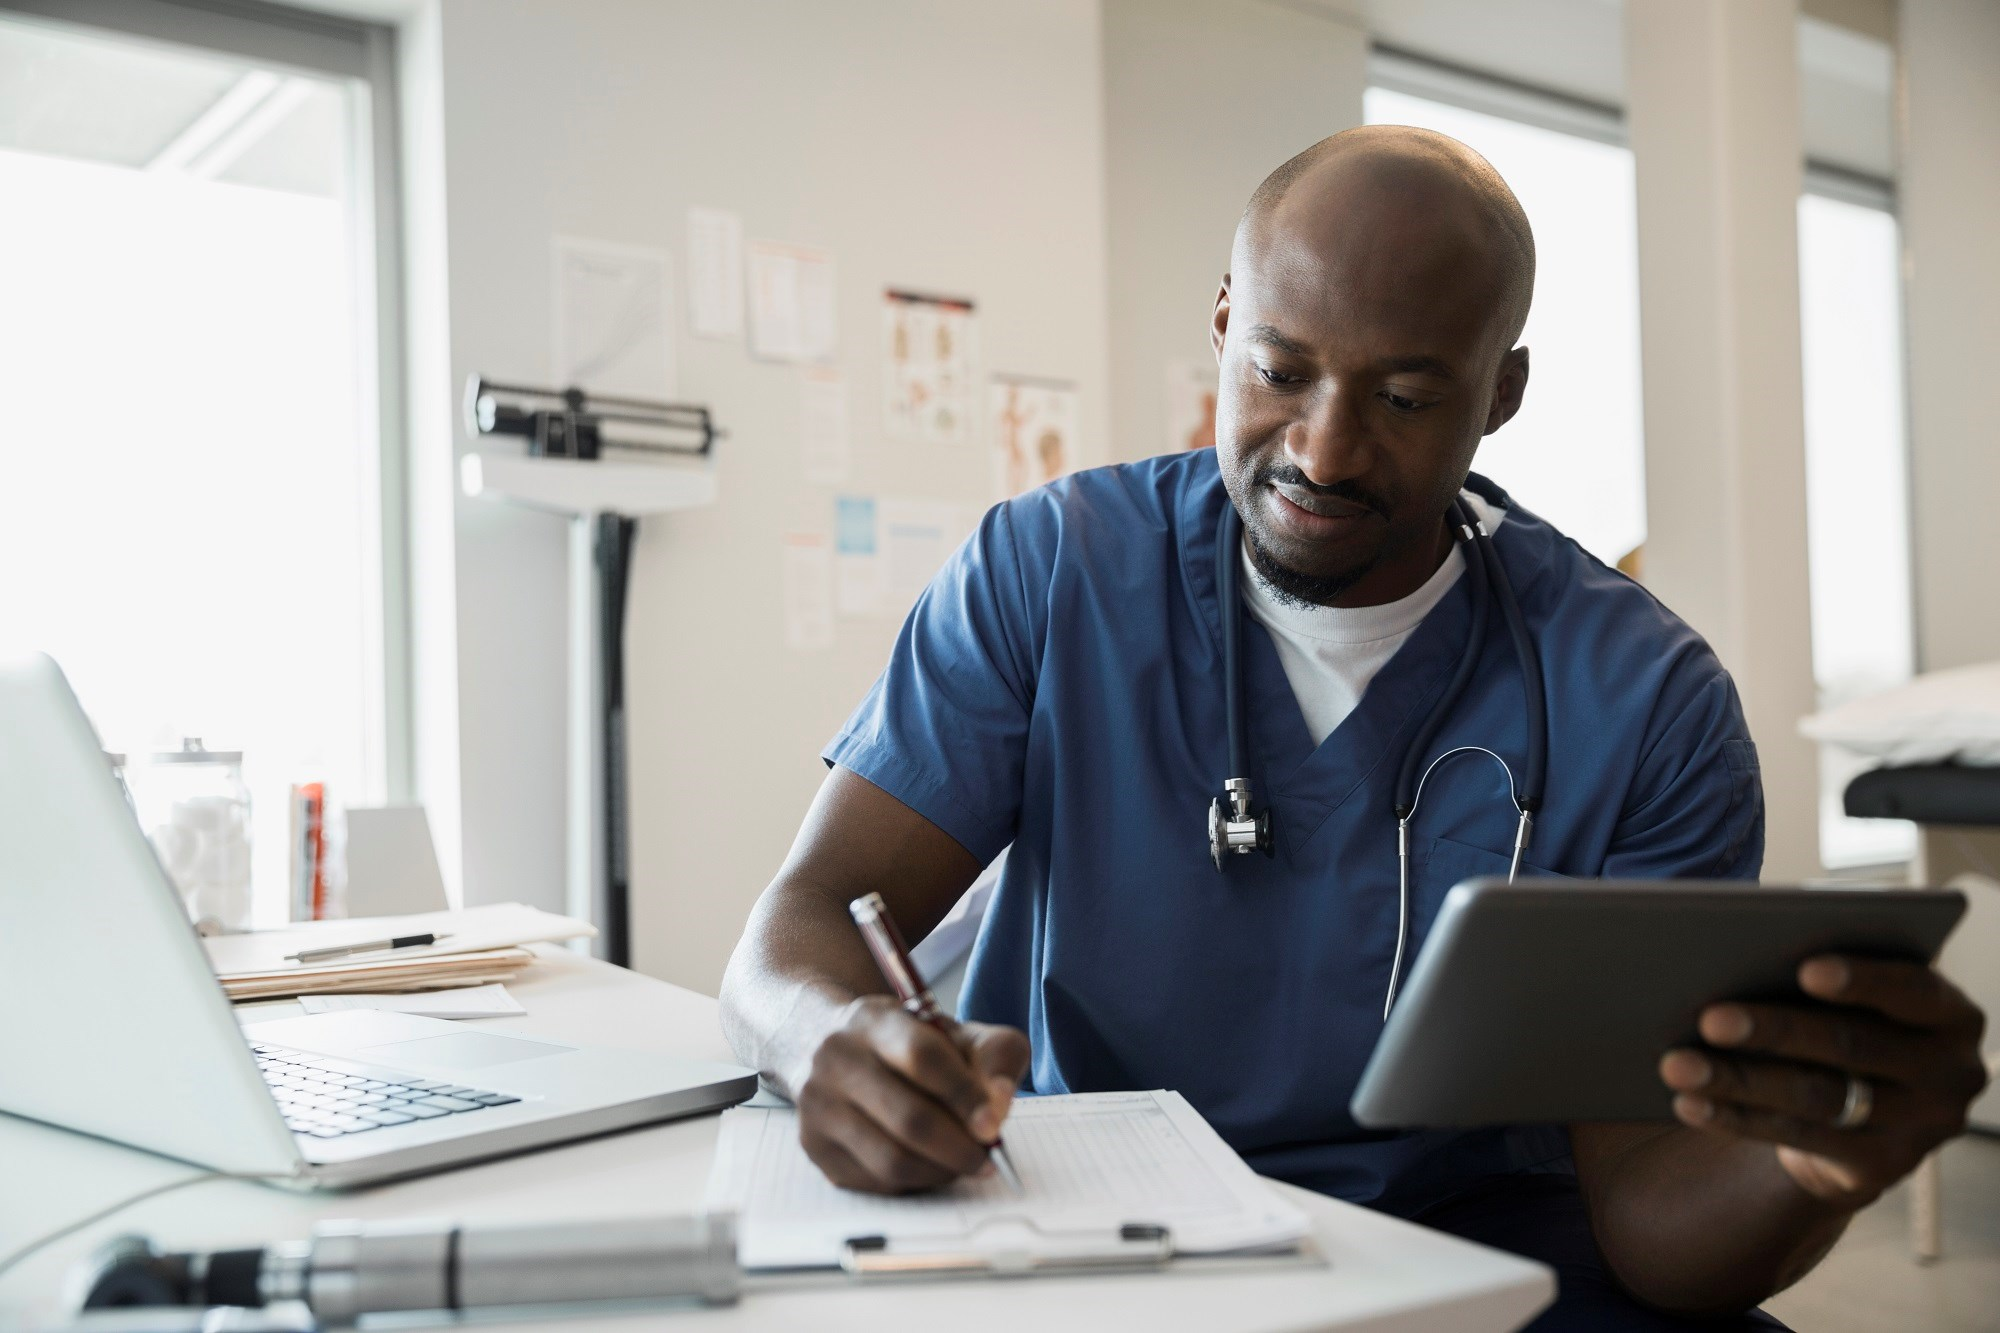 The AMA is calling on medical schools and residency programs to incorporate electronic health record training into their curricula.